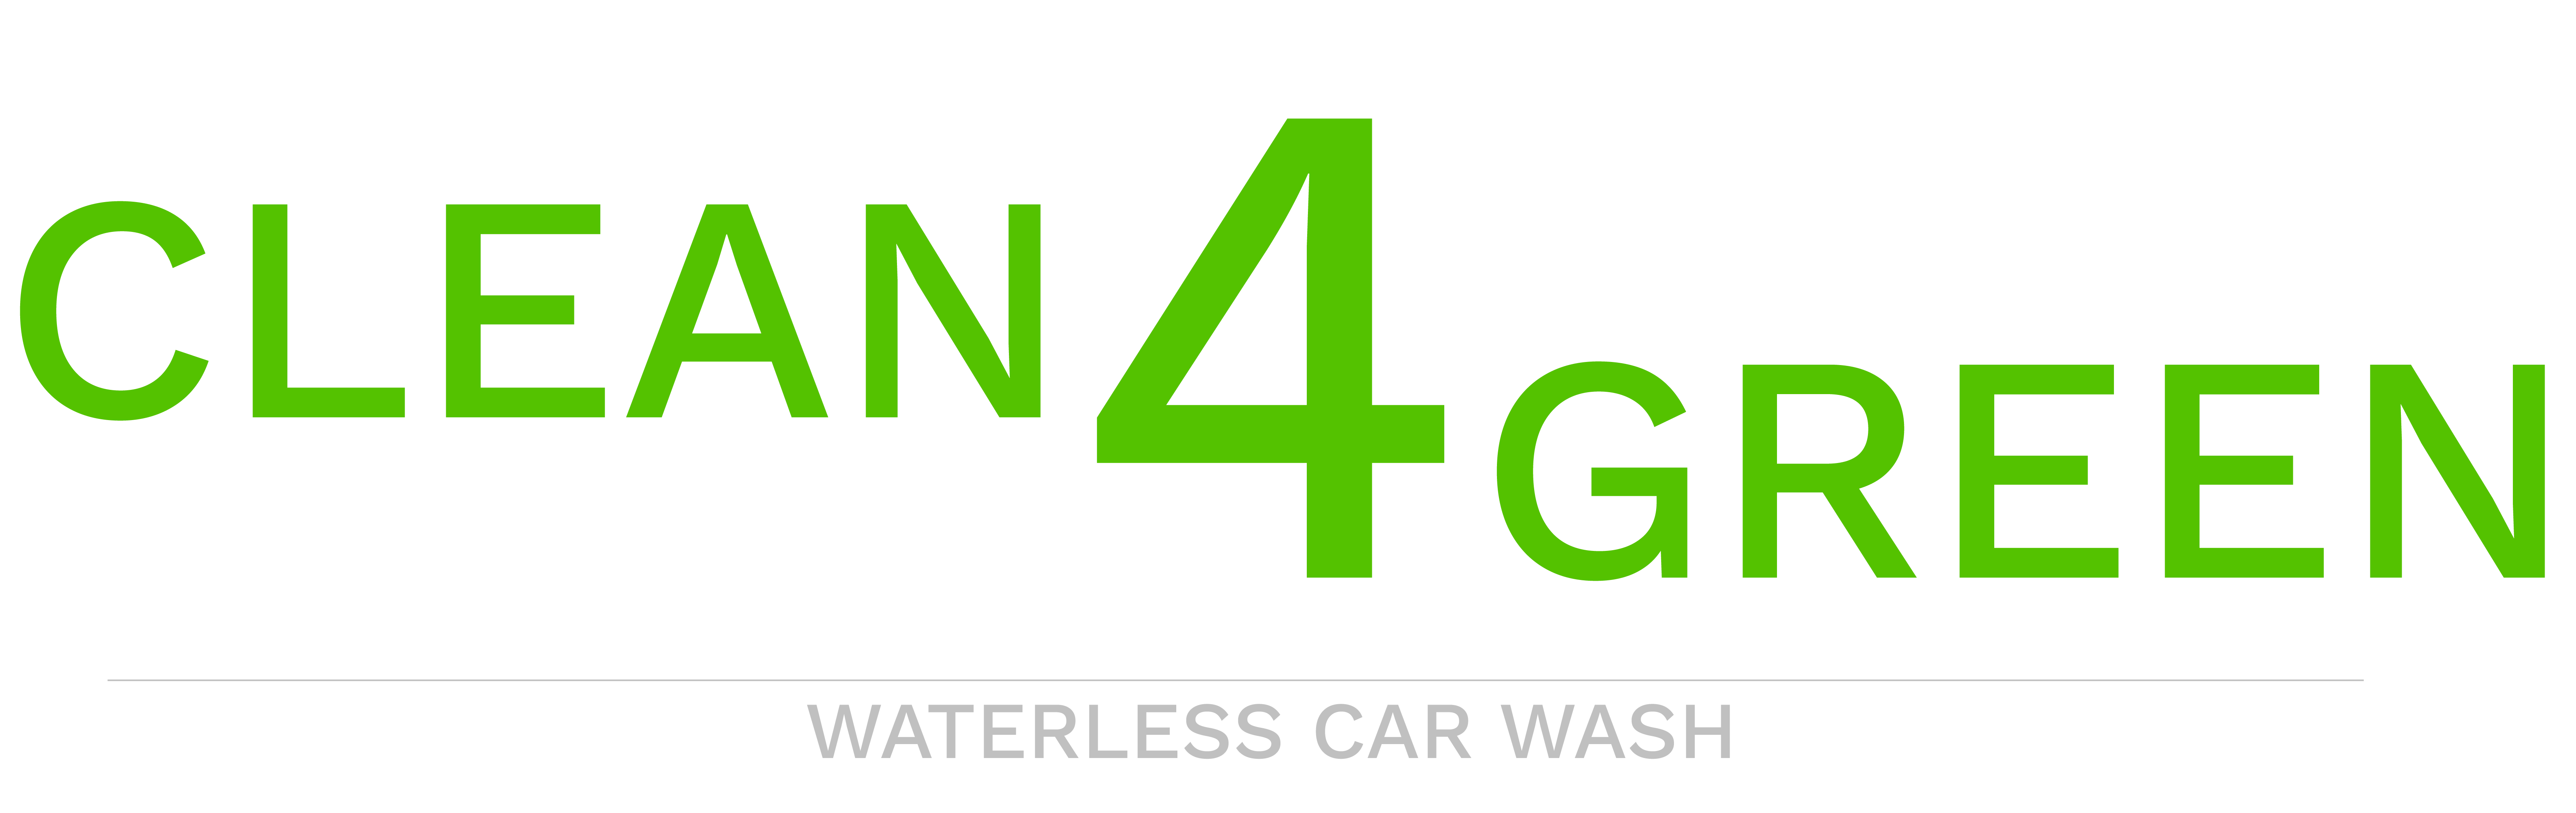 Waterless Car Wash | Clean4Green